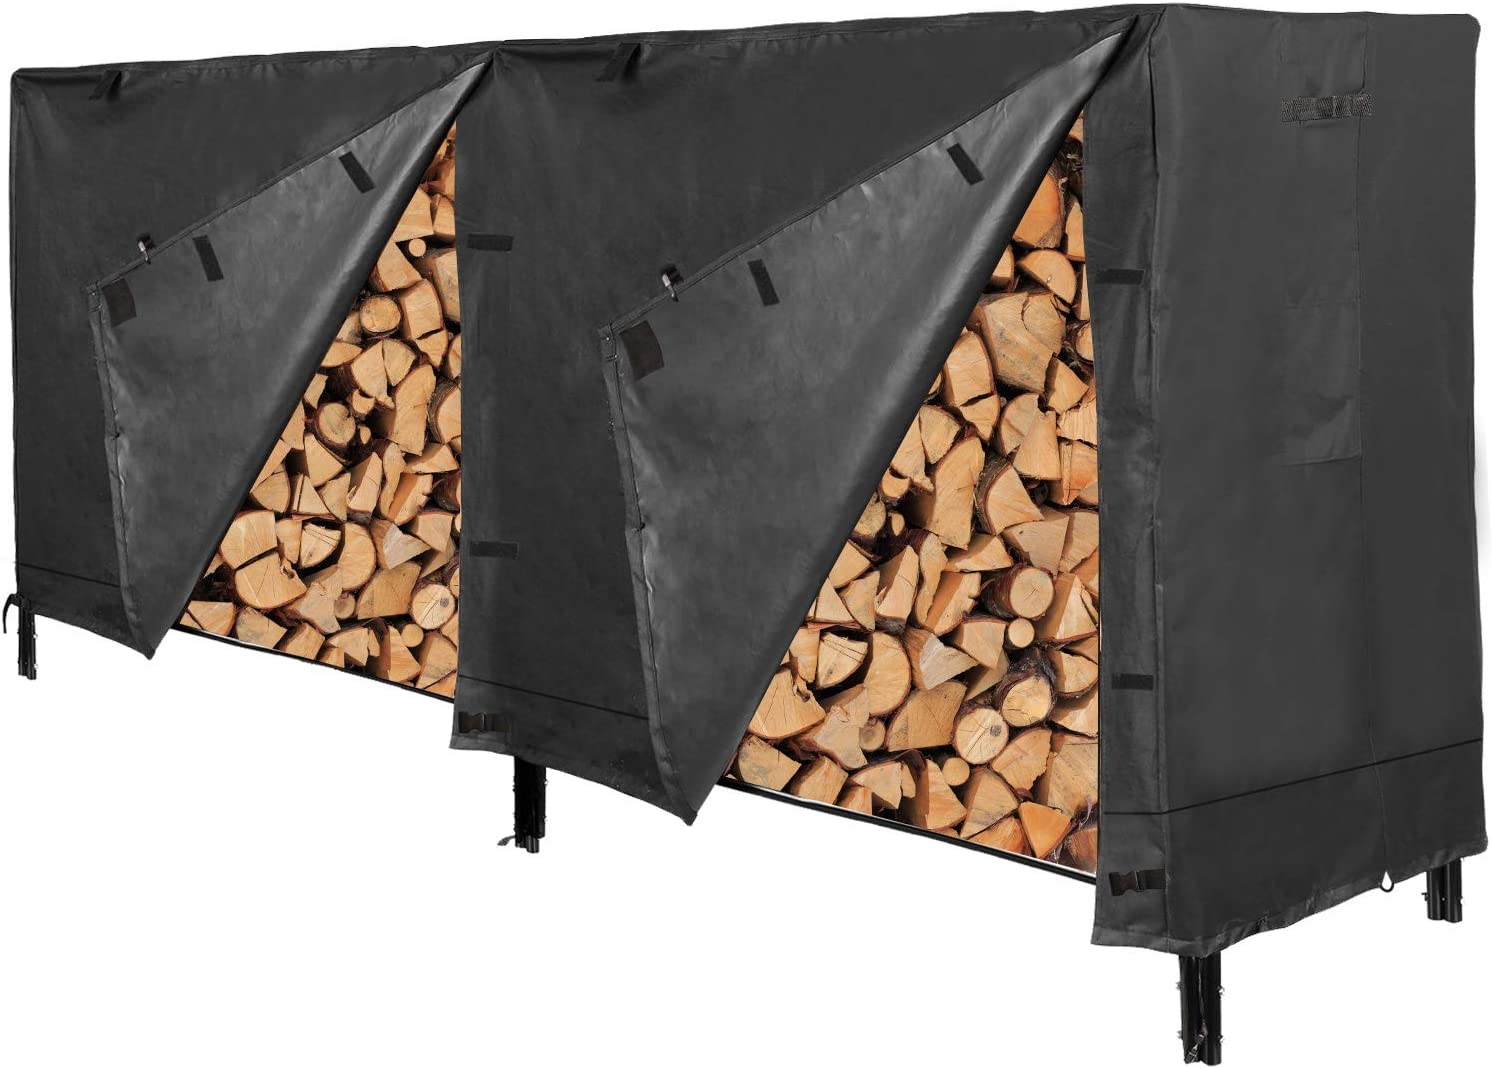 RedSwing Firewood Rack Cover 8 Ft, Log Rack Cover, Heavy Duty and Water Resistant 600D Oxford Firewood Cover, All Weather Protection, Black